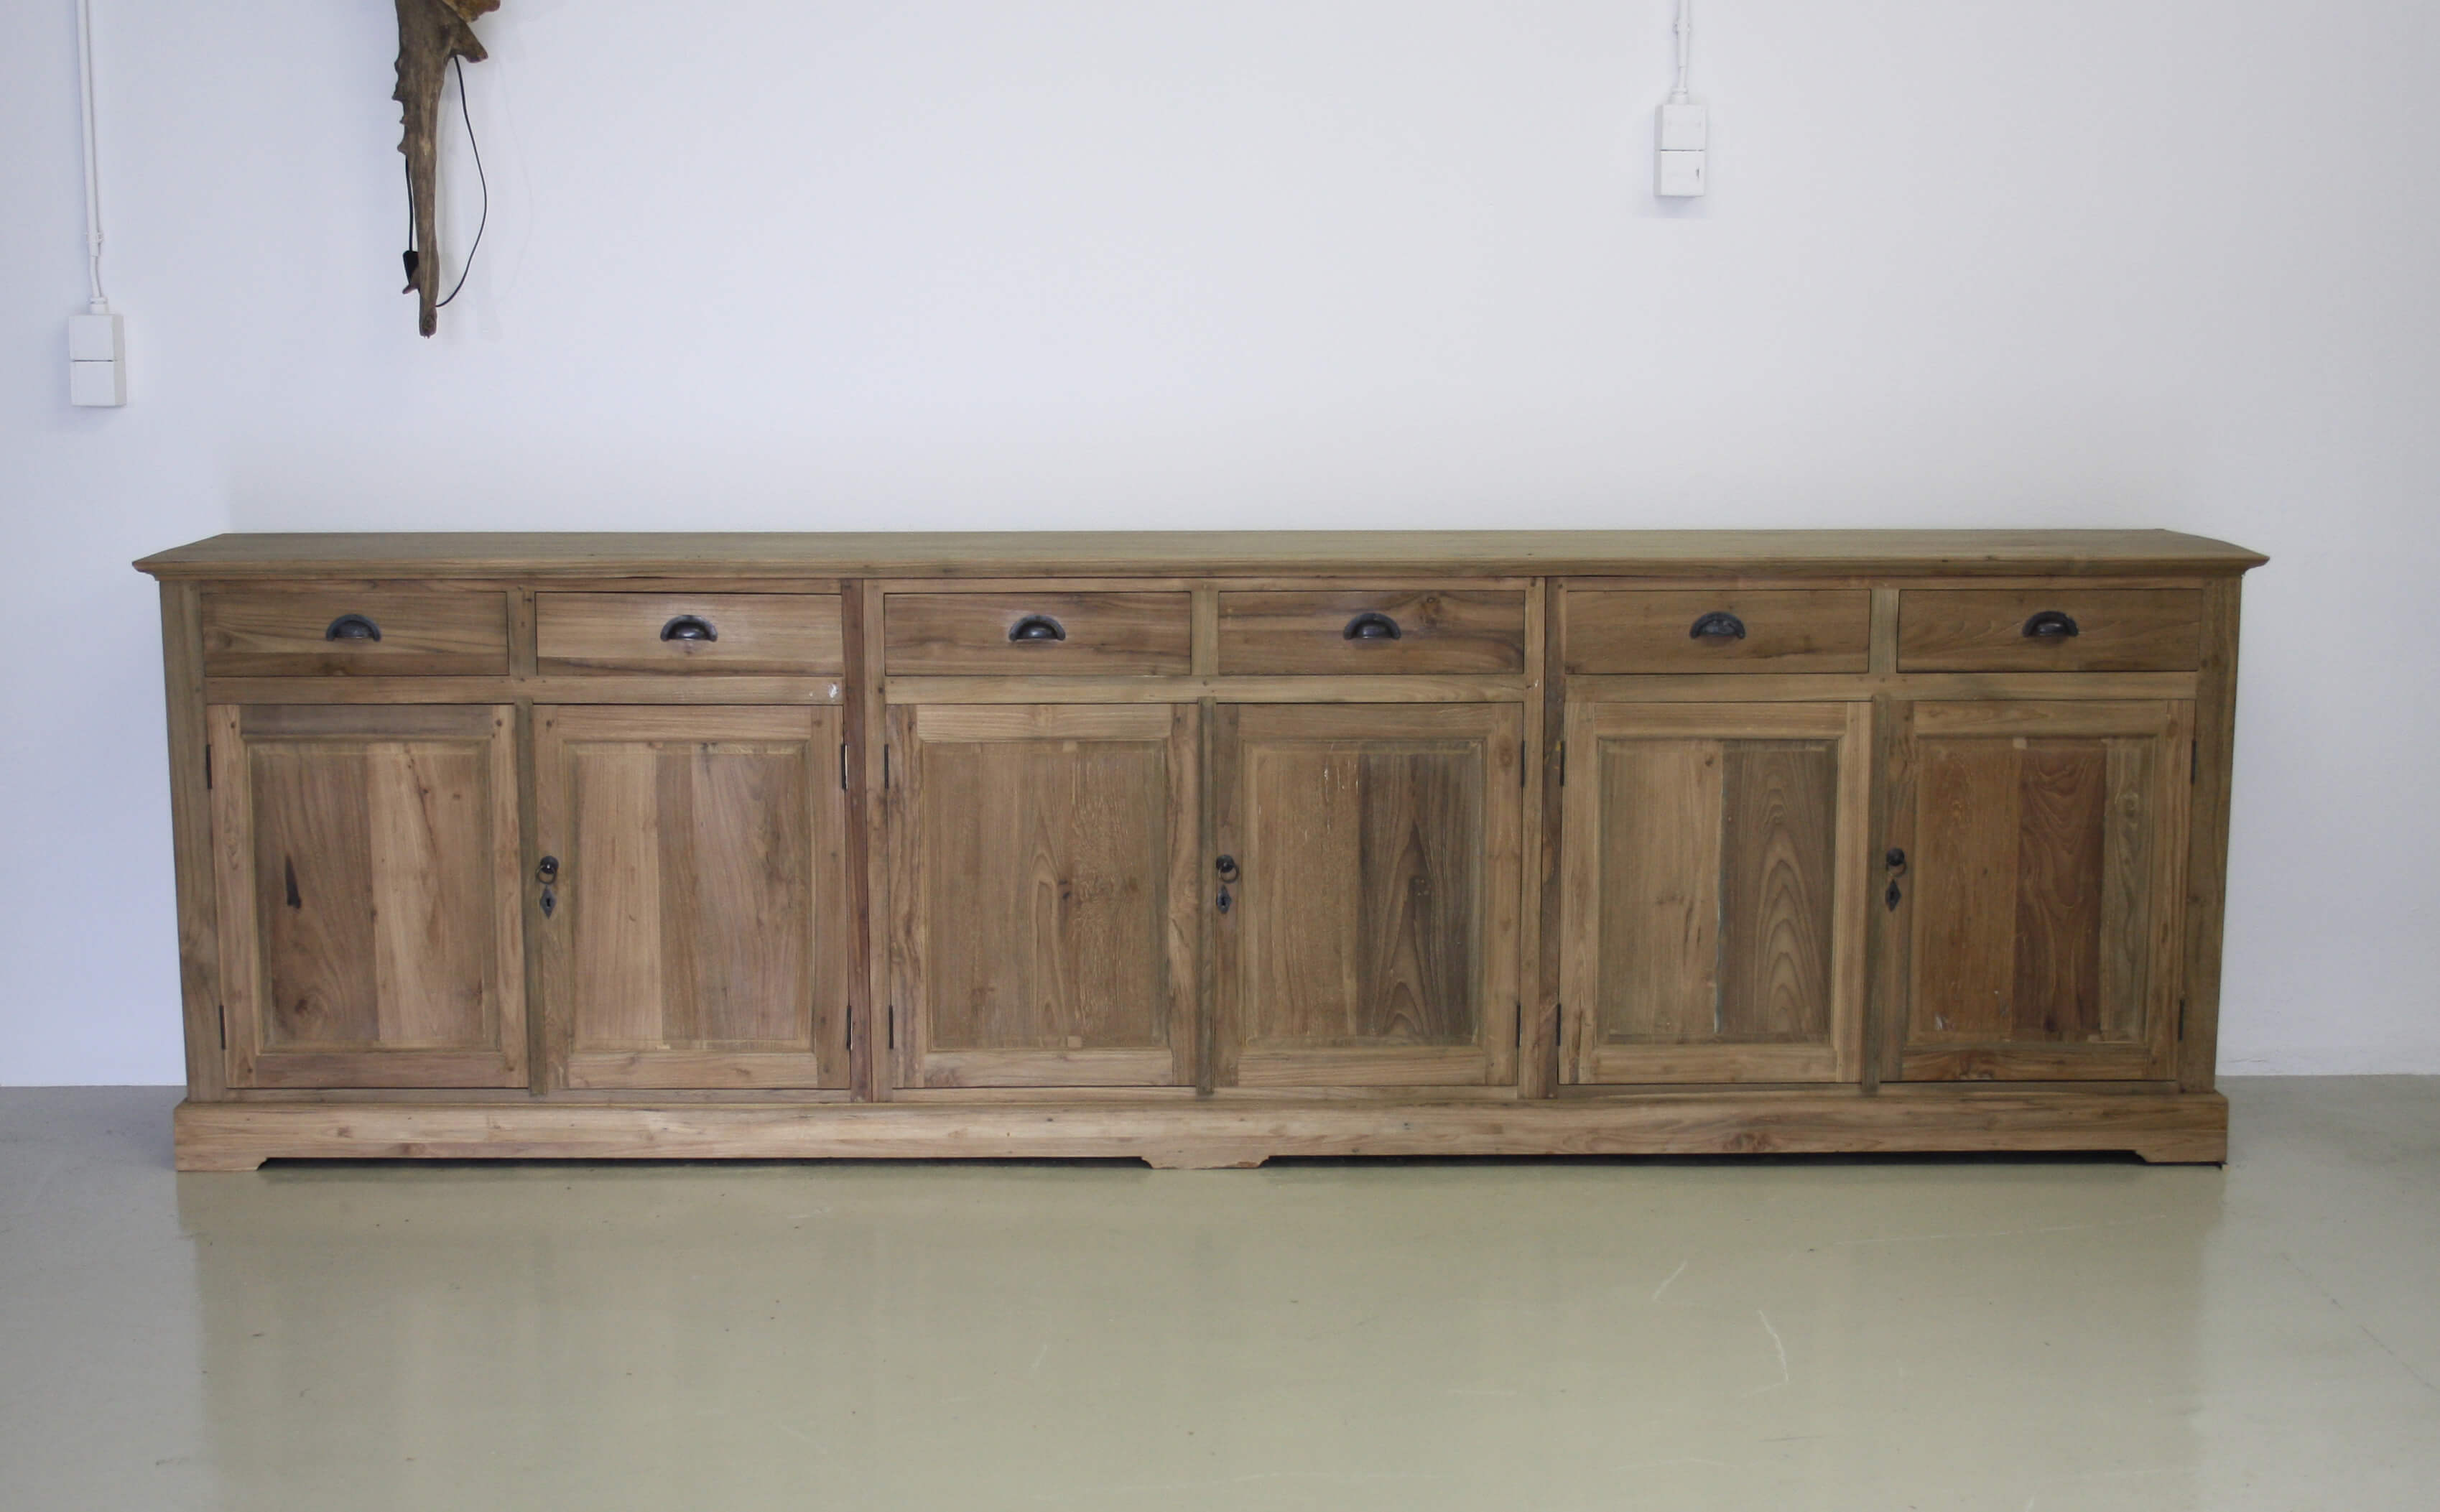 Dressoir 1 Meter Breed.Teak Dressoir 3 Meter Breed Indoteak